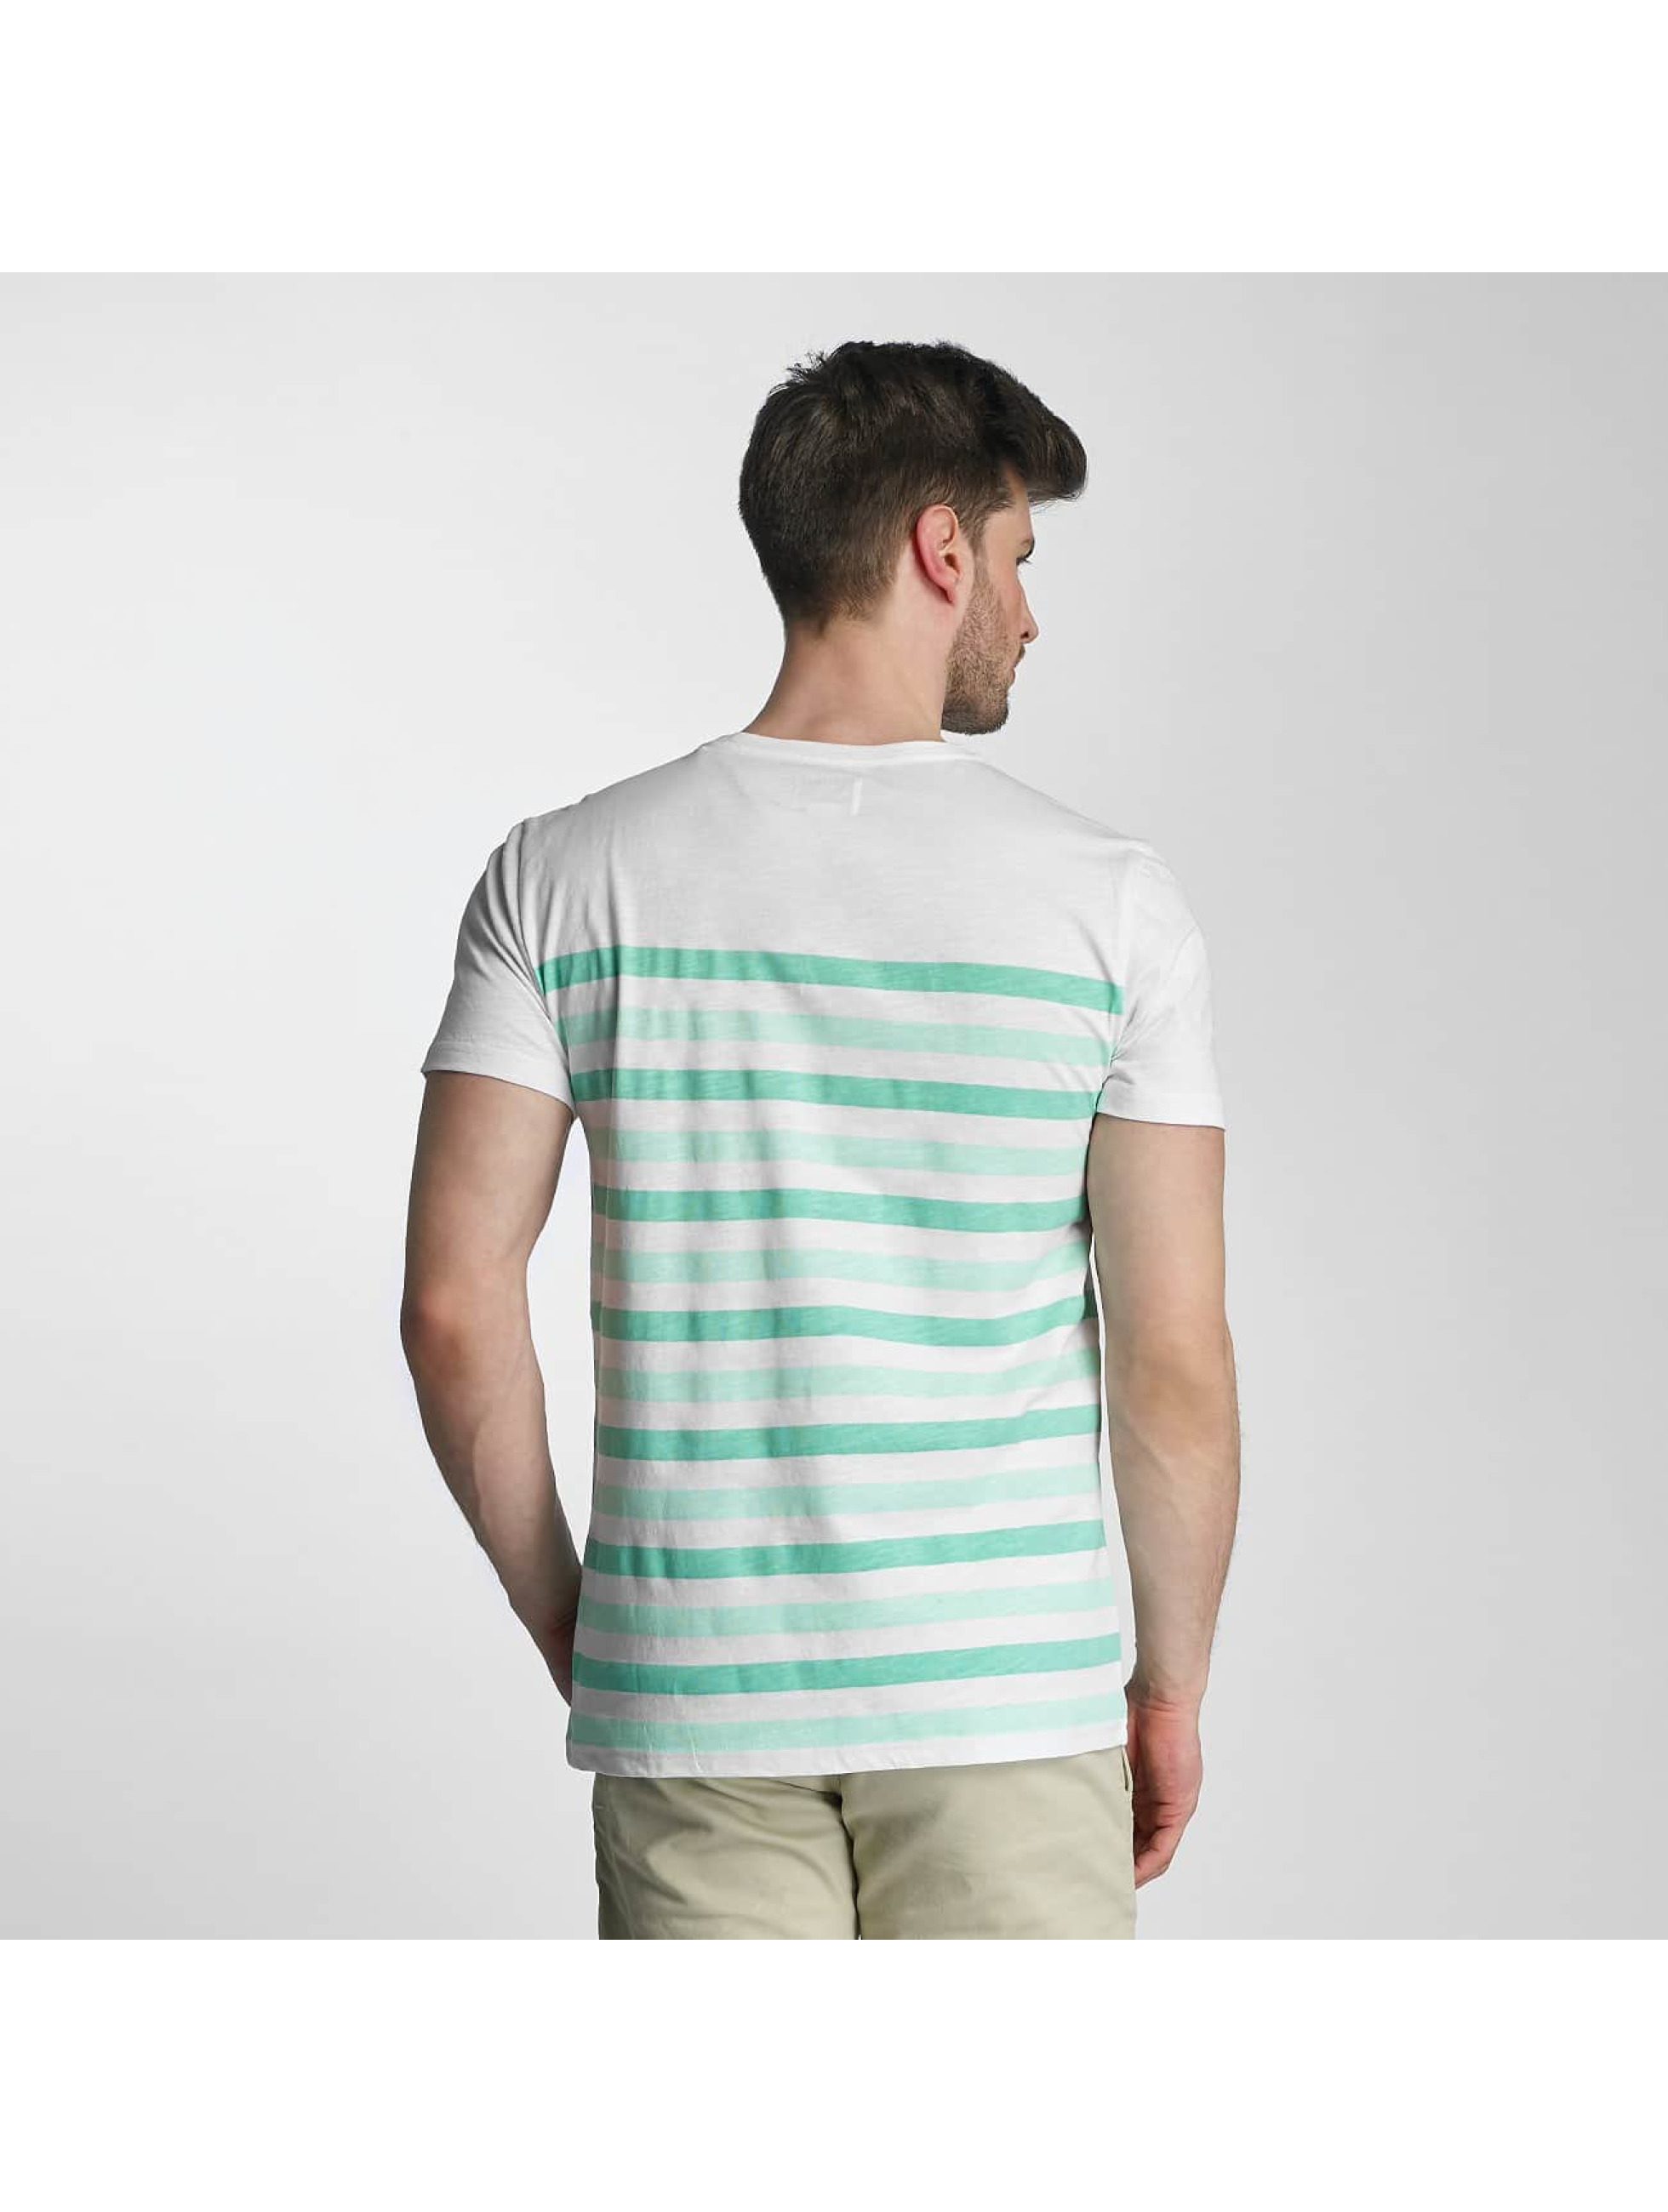 SHINE Original t-shirt Striped groen